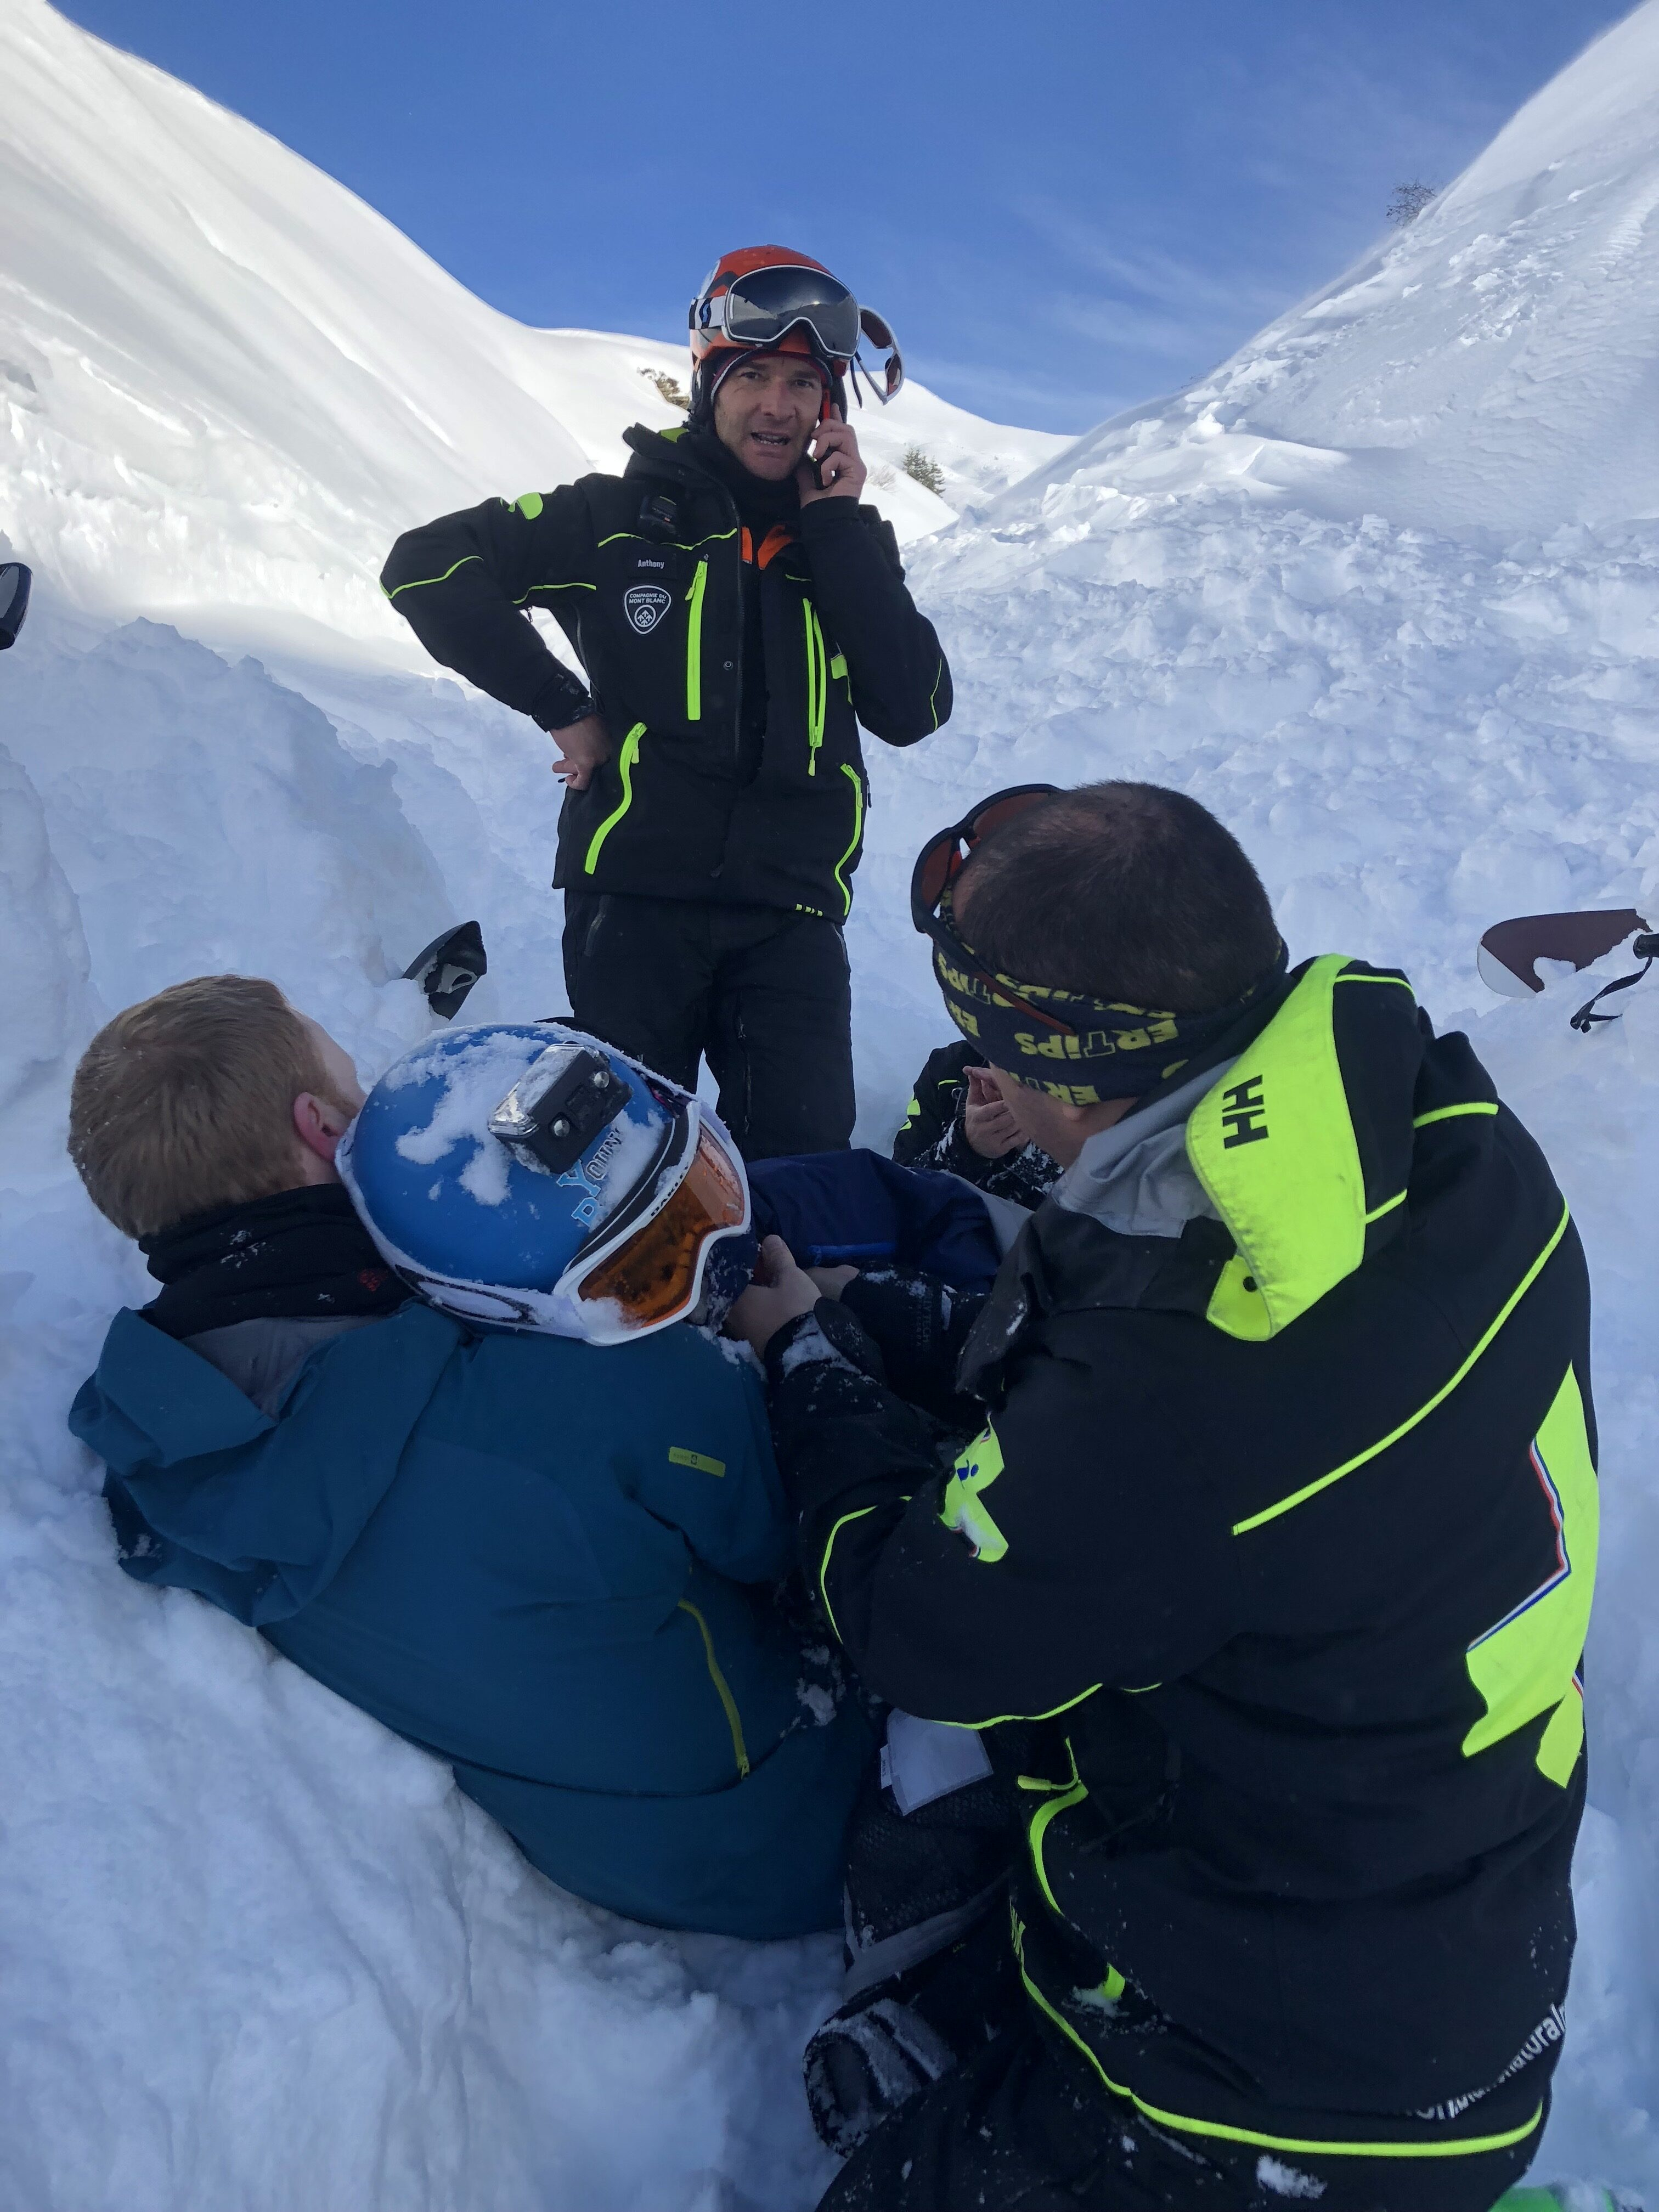 11-year-old boy with rescuers after being buried by snow